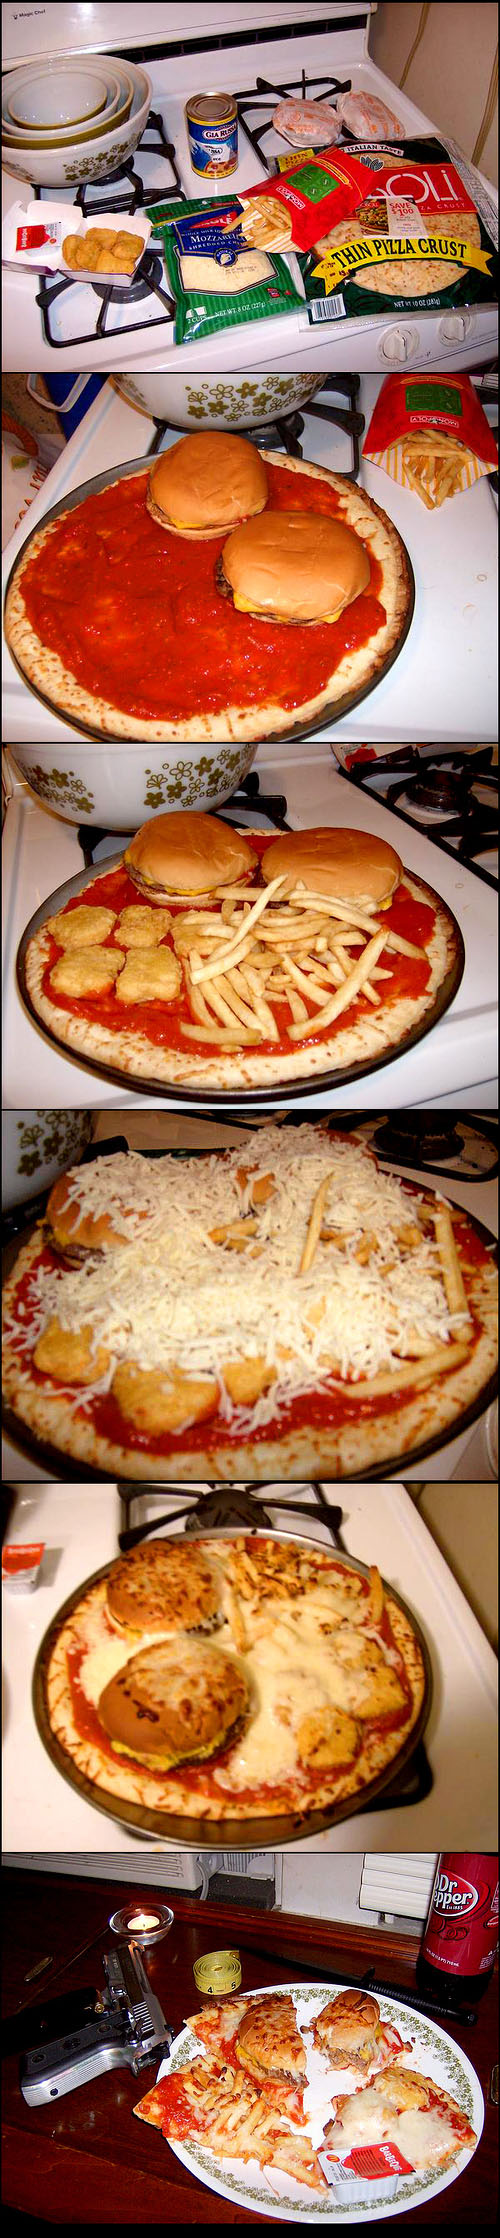 macdonaldspizza McDonalds on a pizza wtf Food